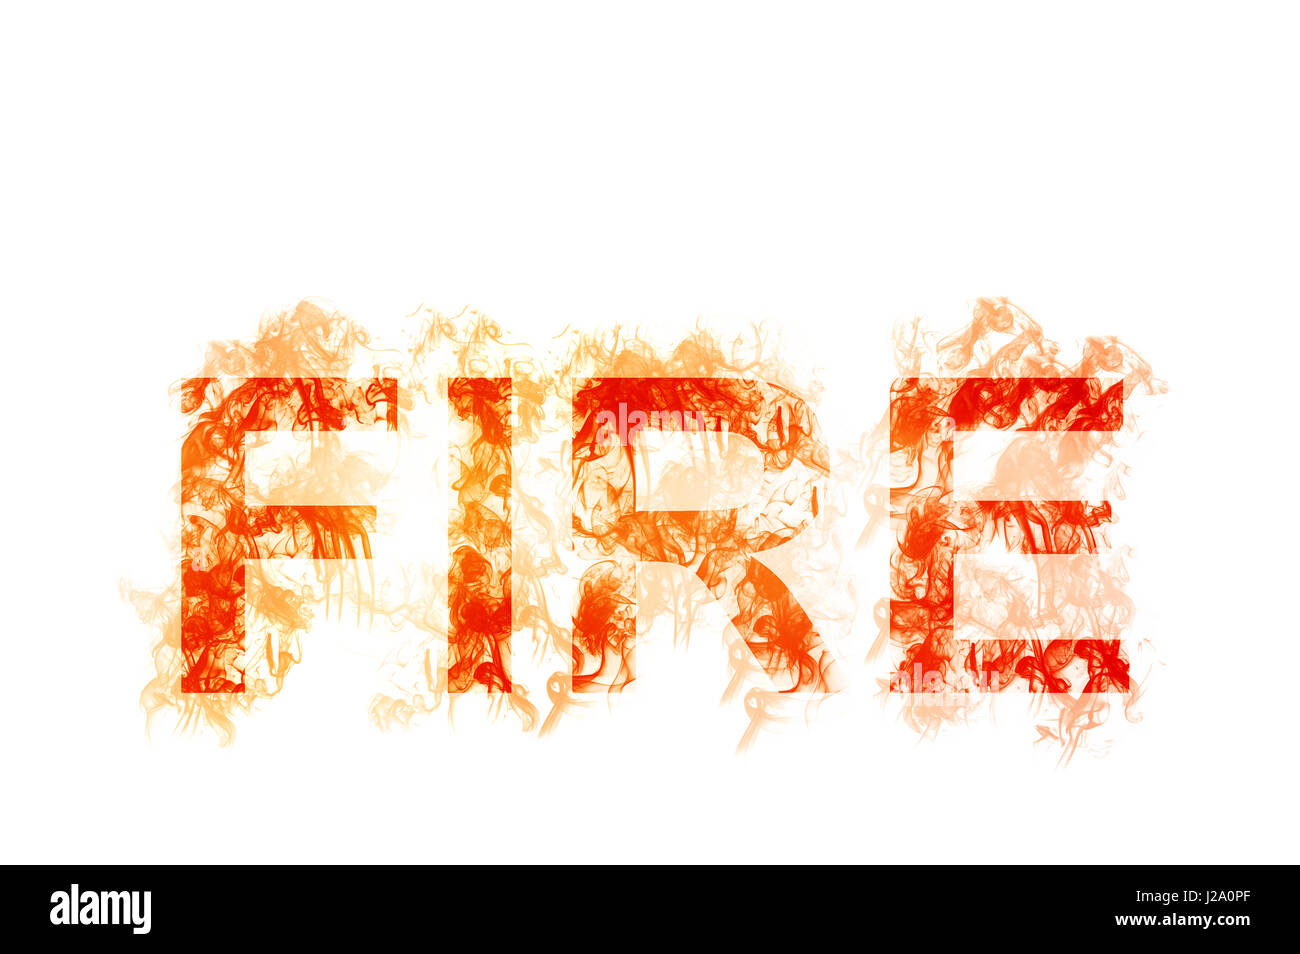 Word On Fire Stock Photos & Word On Fire Stock Images - Alamy